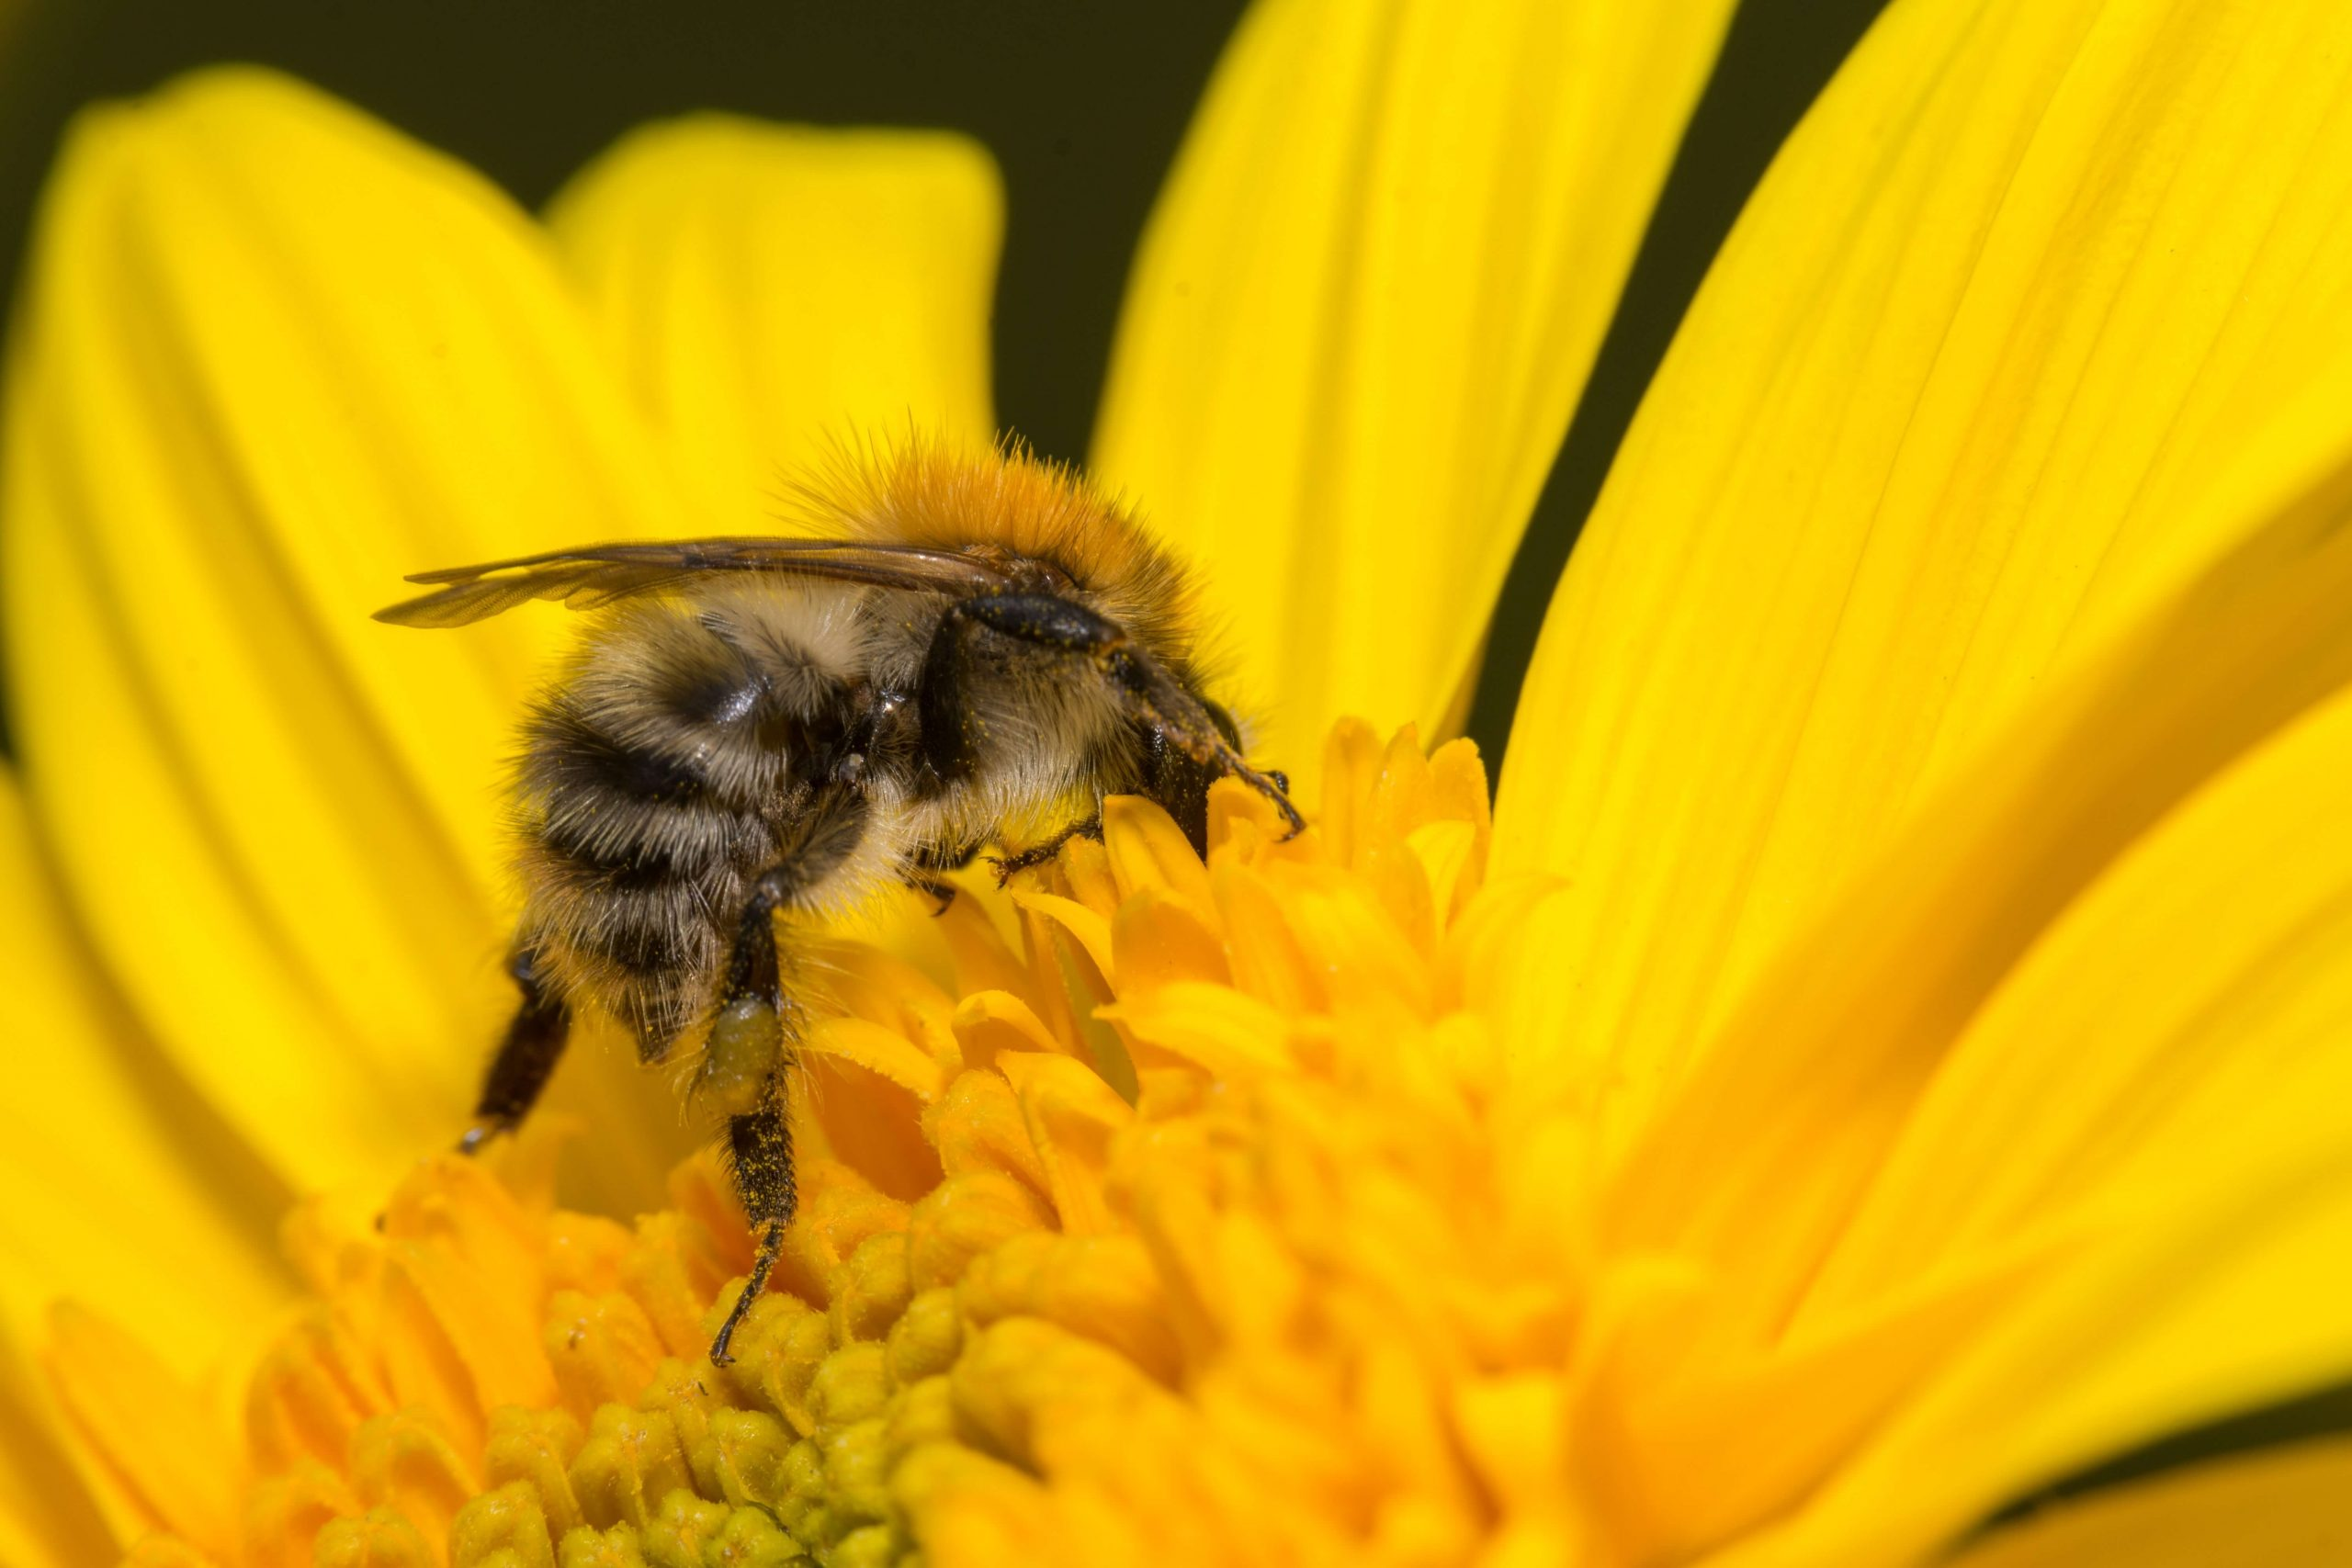 honey is made by bees